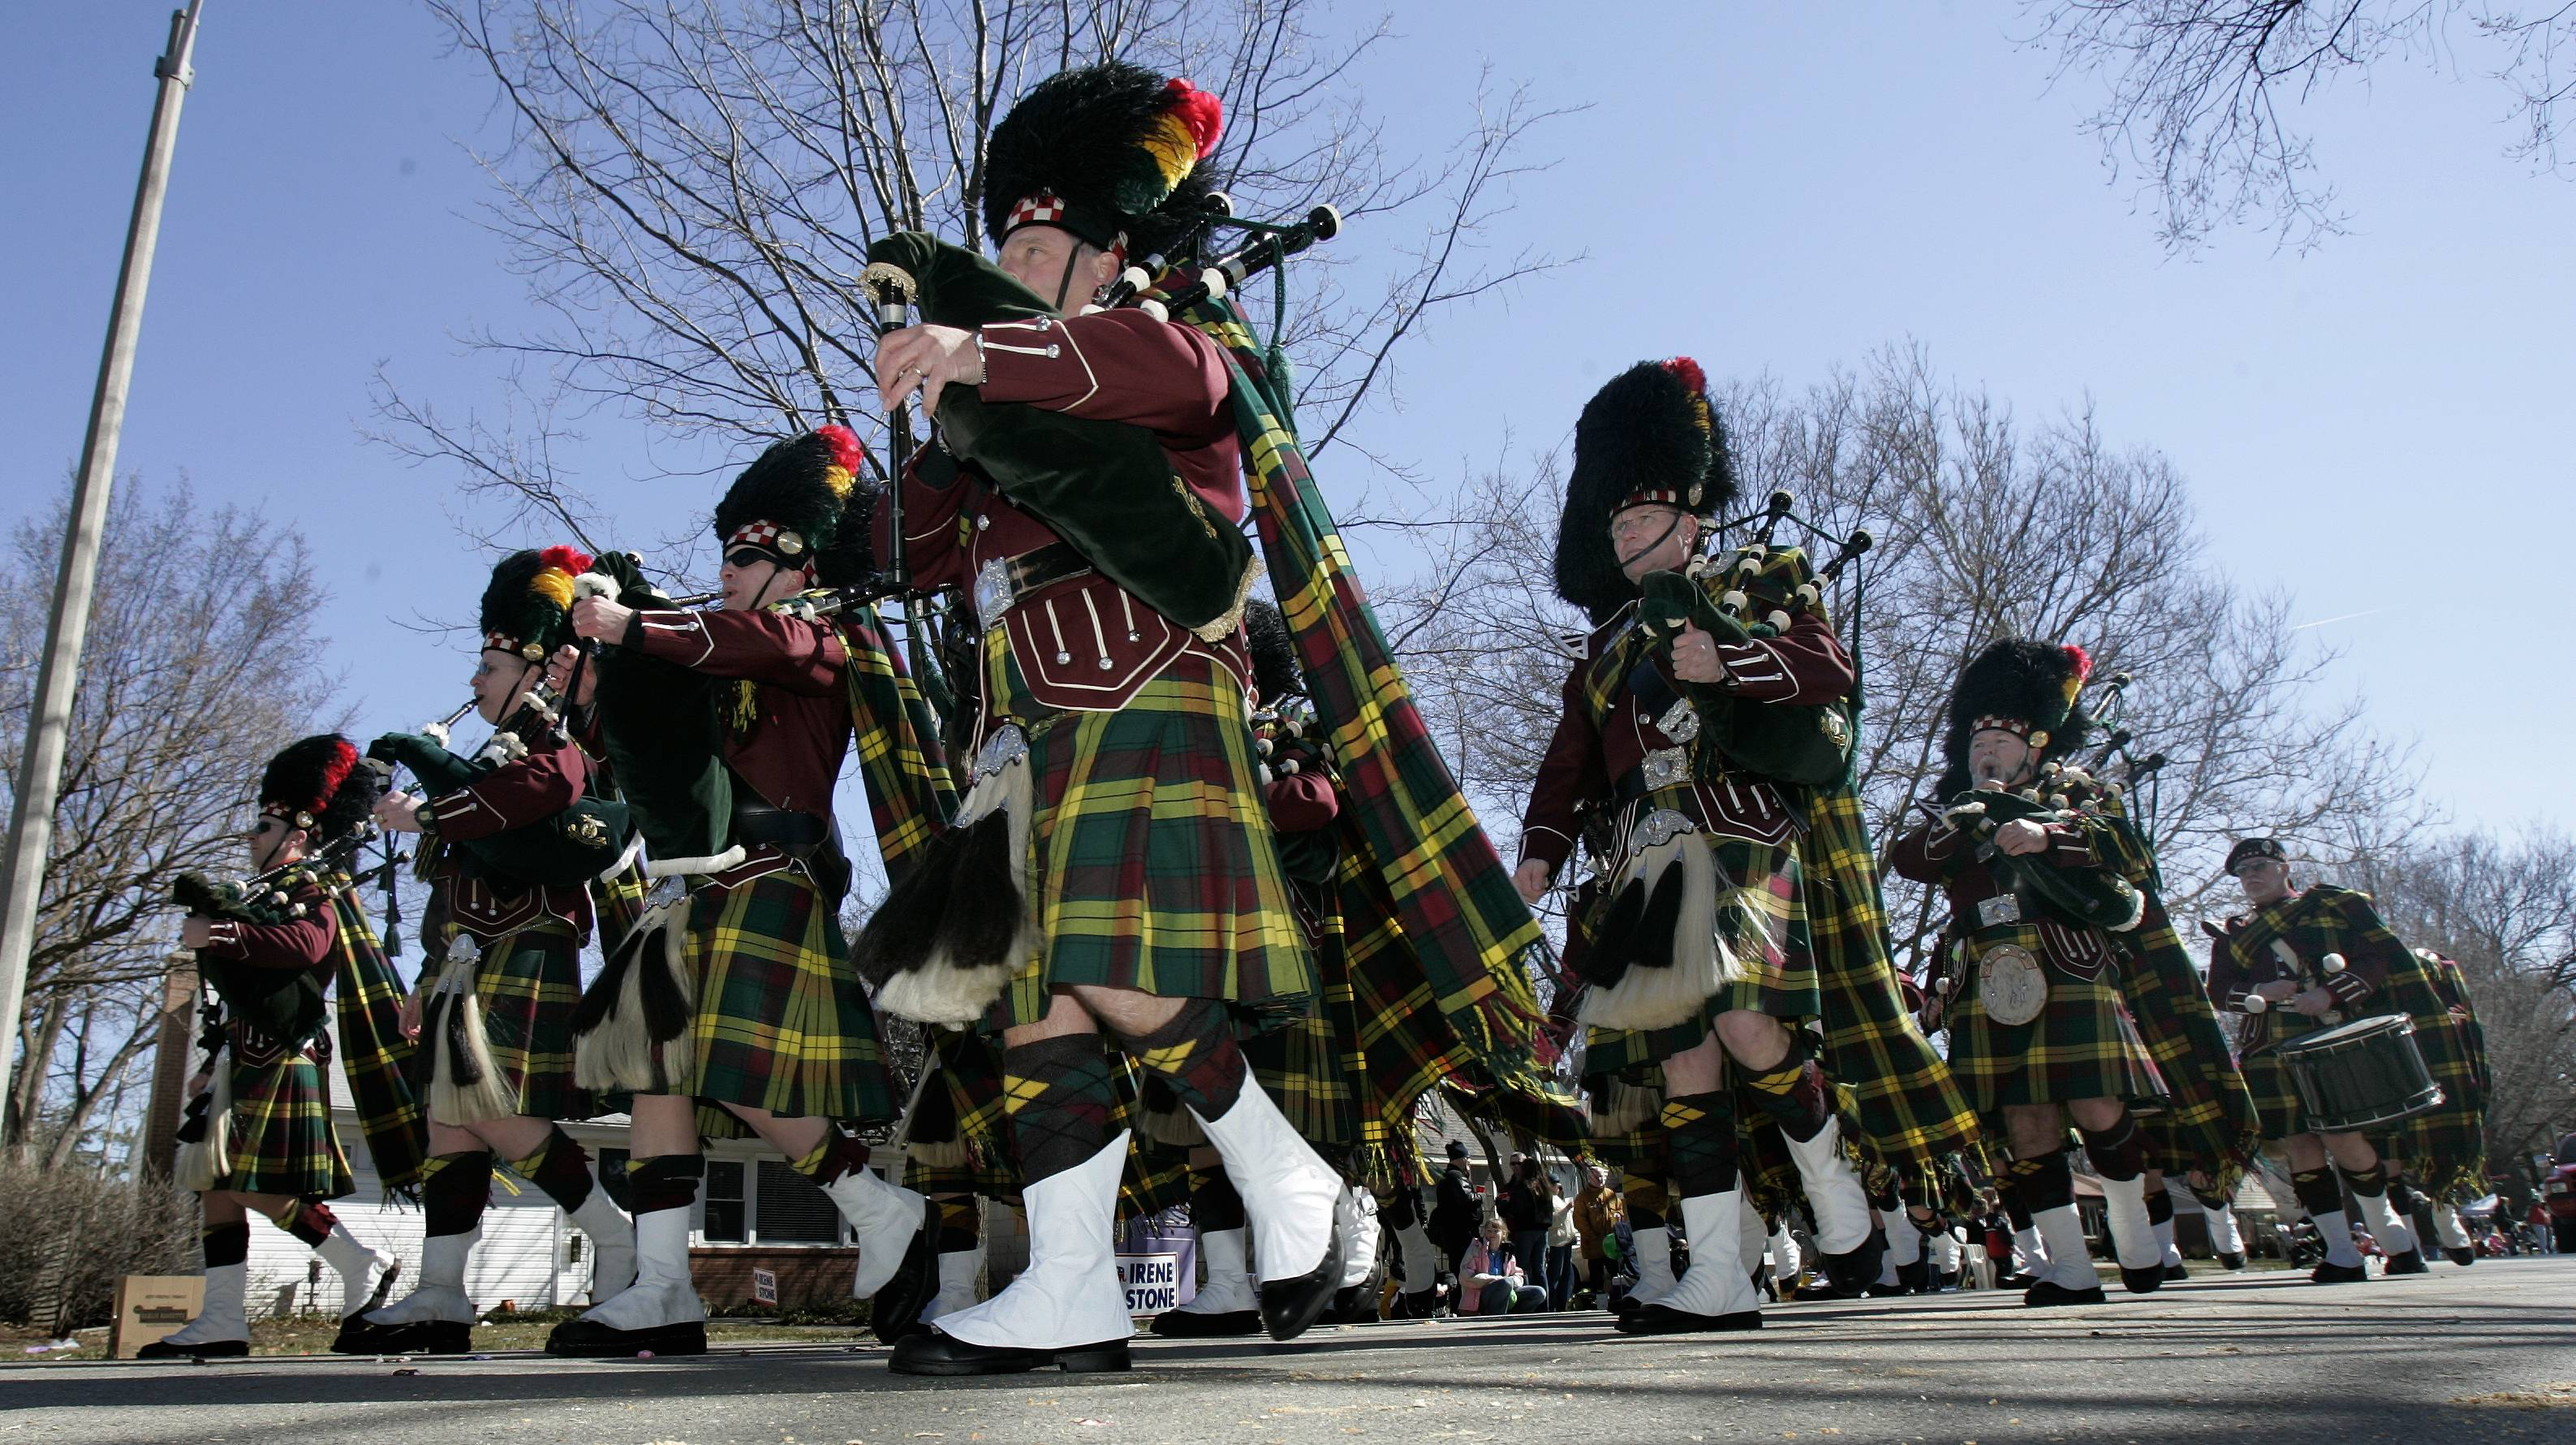 Elmhurst St. Patrick's Day Parade will march up Spring Road with more than 80 entries, including bagpipers, floats, politicians, the parade's traditional big drum and the World Famous Elmhurst Armpit Orchestra.